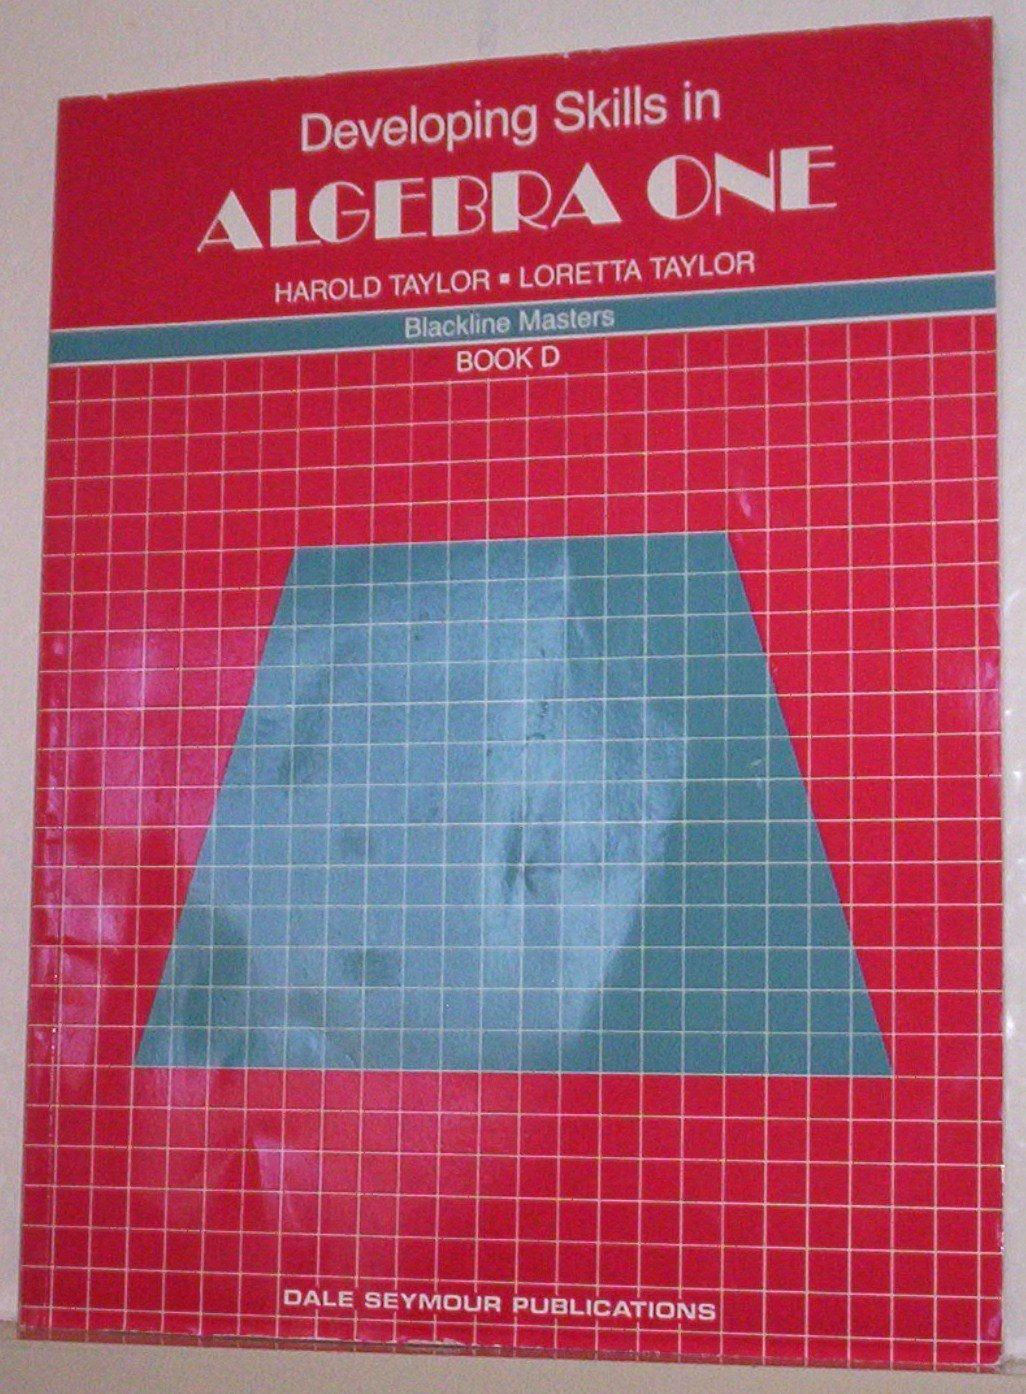 Developing Skills in Algebra One (Blackline Masters, Book D): Harold  Taylor, Loretta Taylor: 9780866512244: Amazon.com: Books